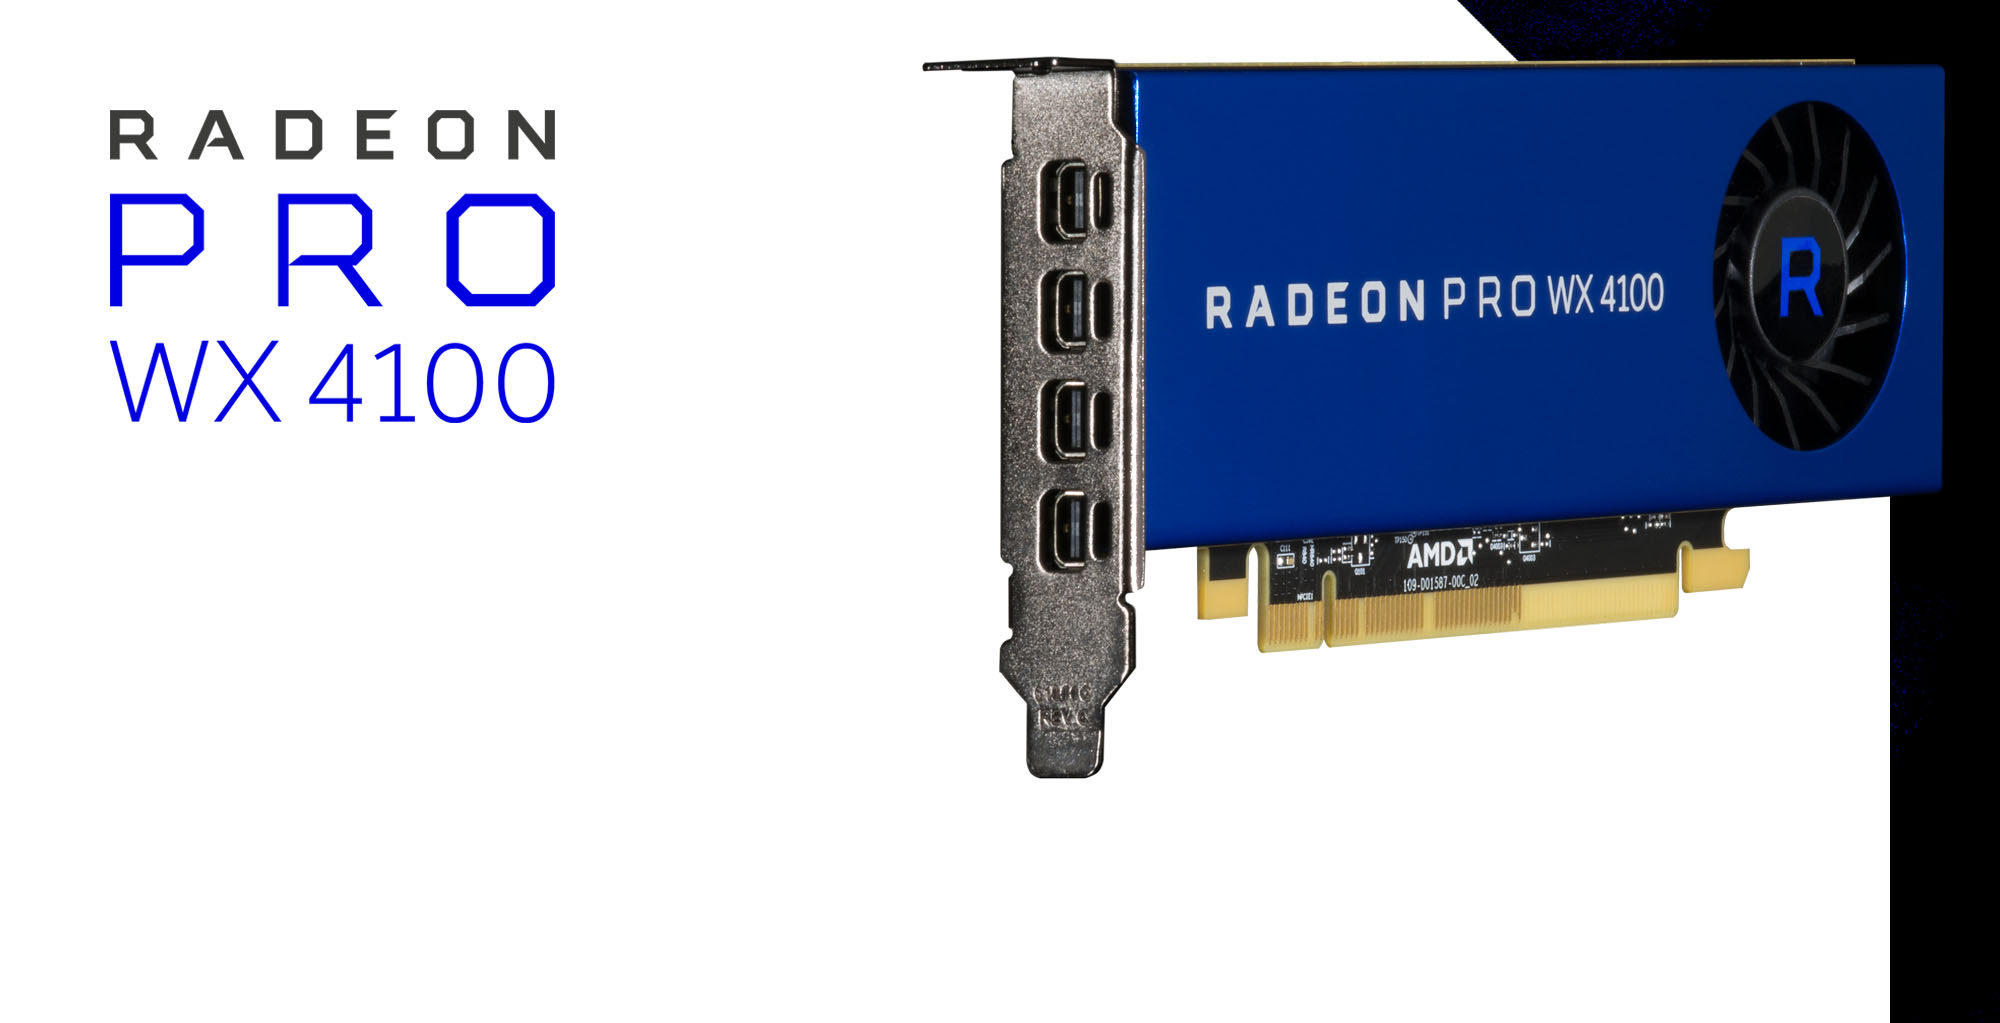 1U Intel Xeon 3400 Server support for 2 Riser Cards